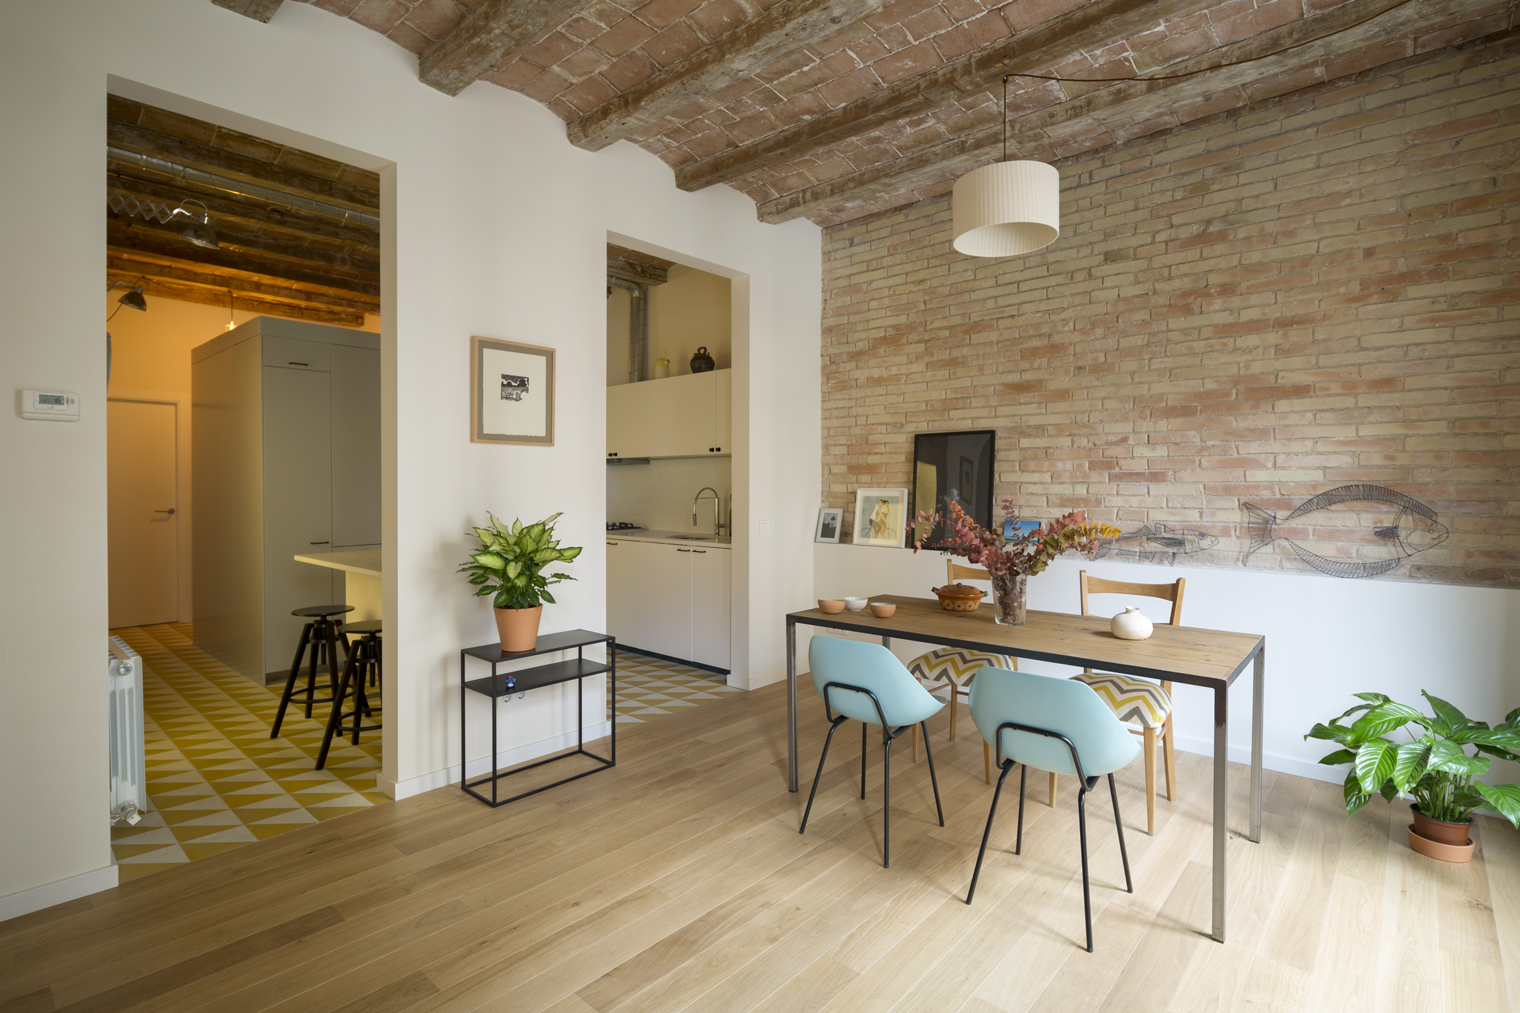 Nook architects saca partido al chafl n de barcelona for Immagini di case rustiche